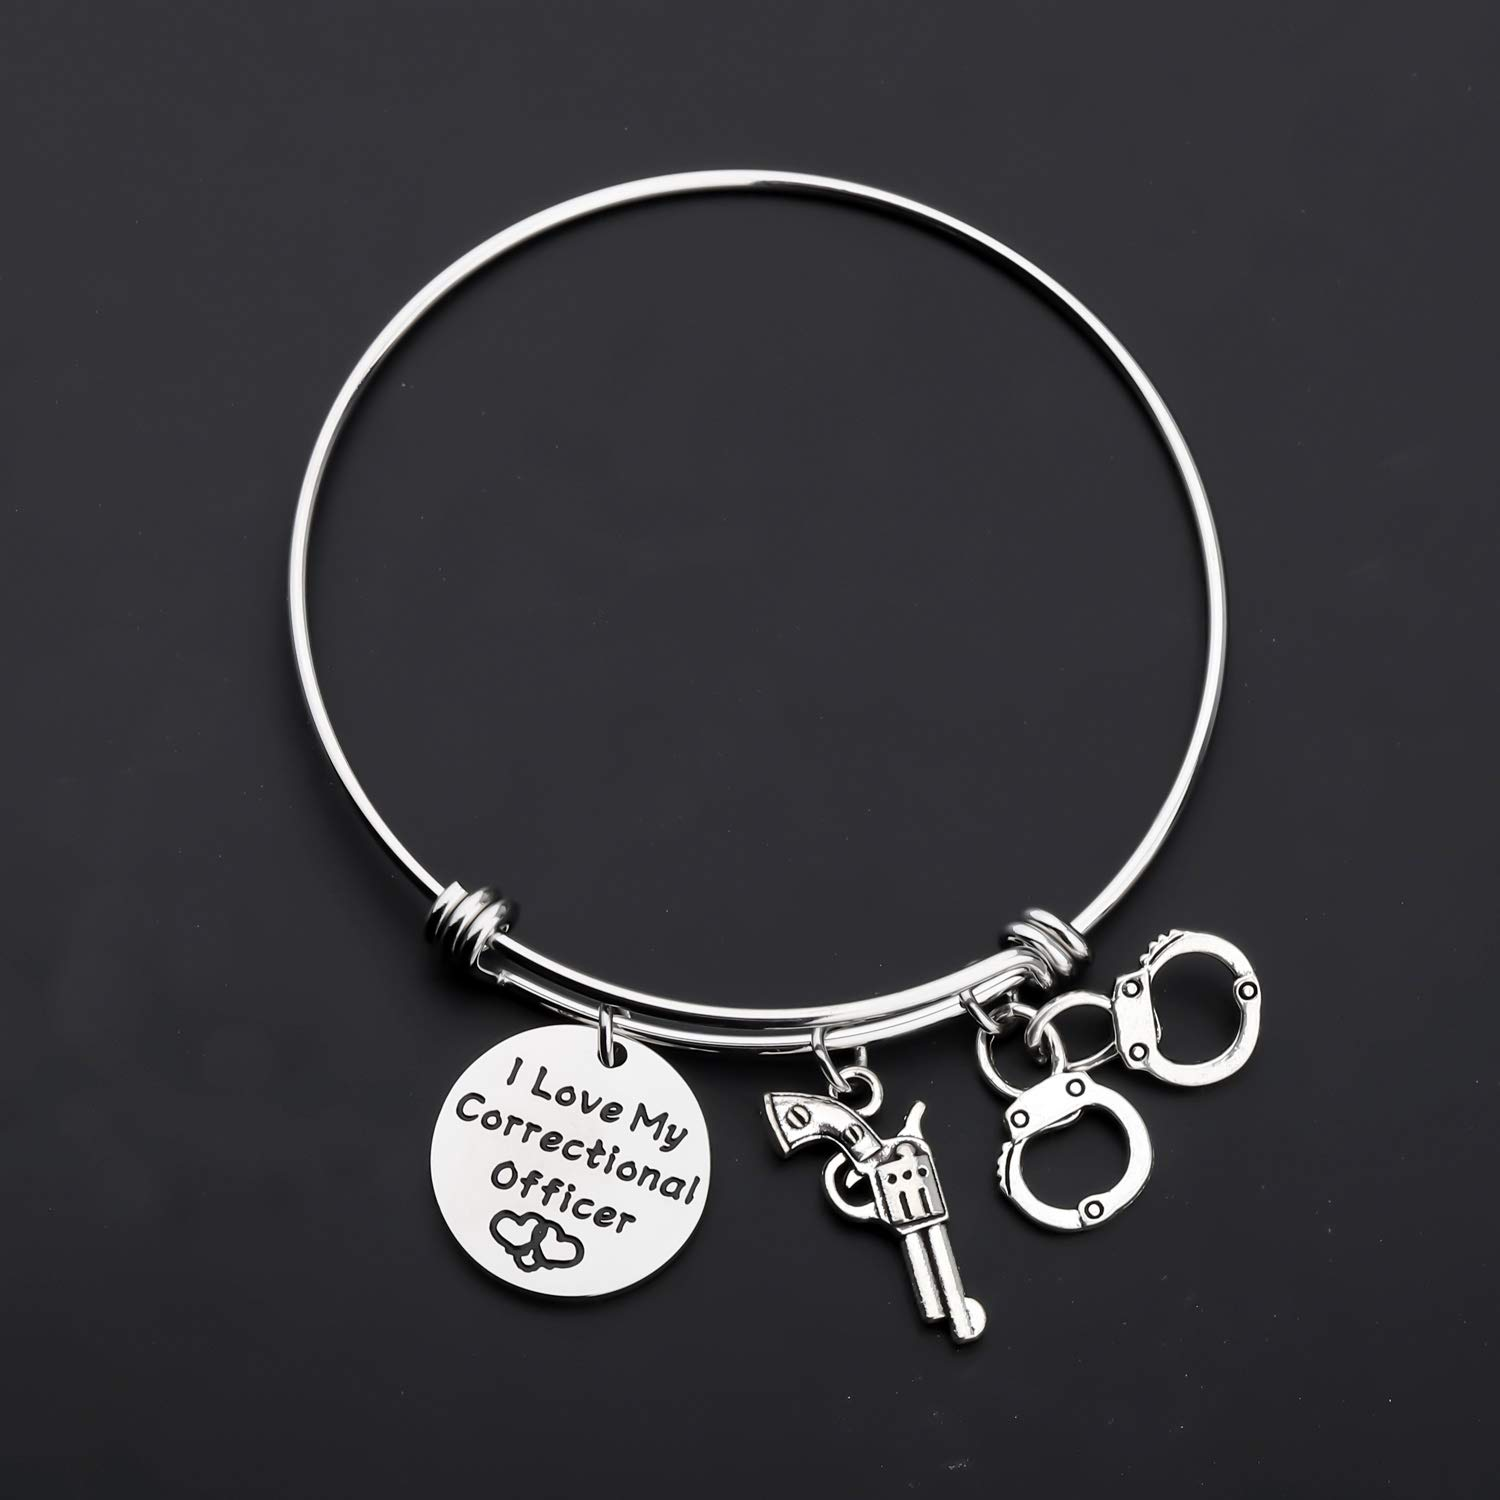 Gzrlyf Correctional Officer Wife Gifts I Love My Correctional Officer Bracelet for Wife Mom